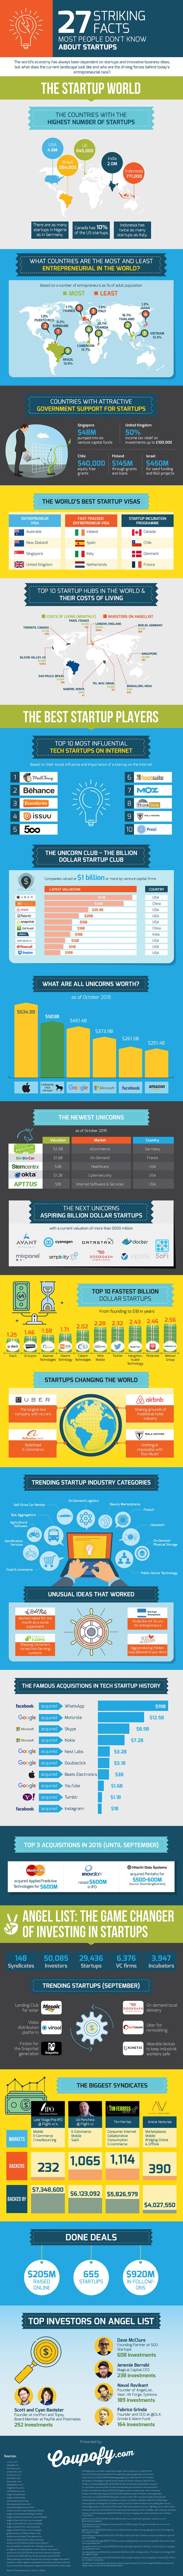 27-striking-facts-most-people-dont-know-about-startups_562469ea3f6ac